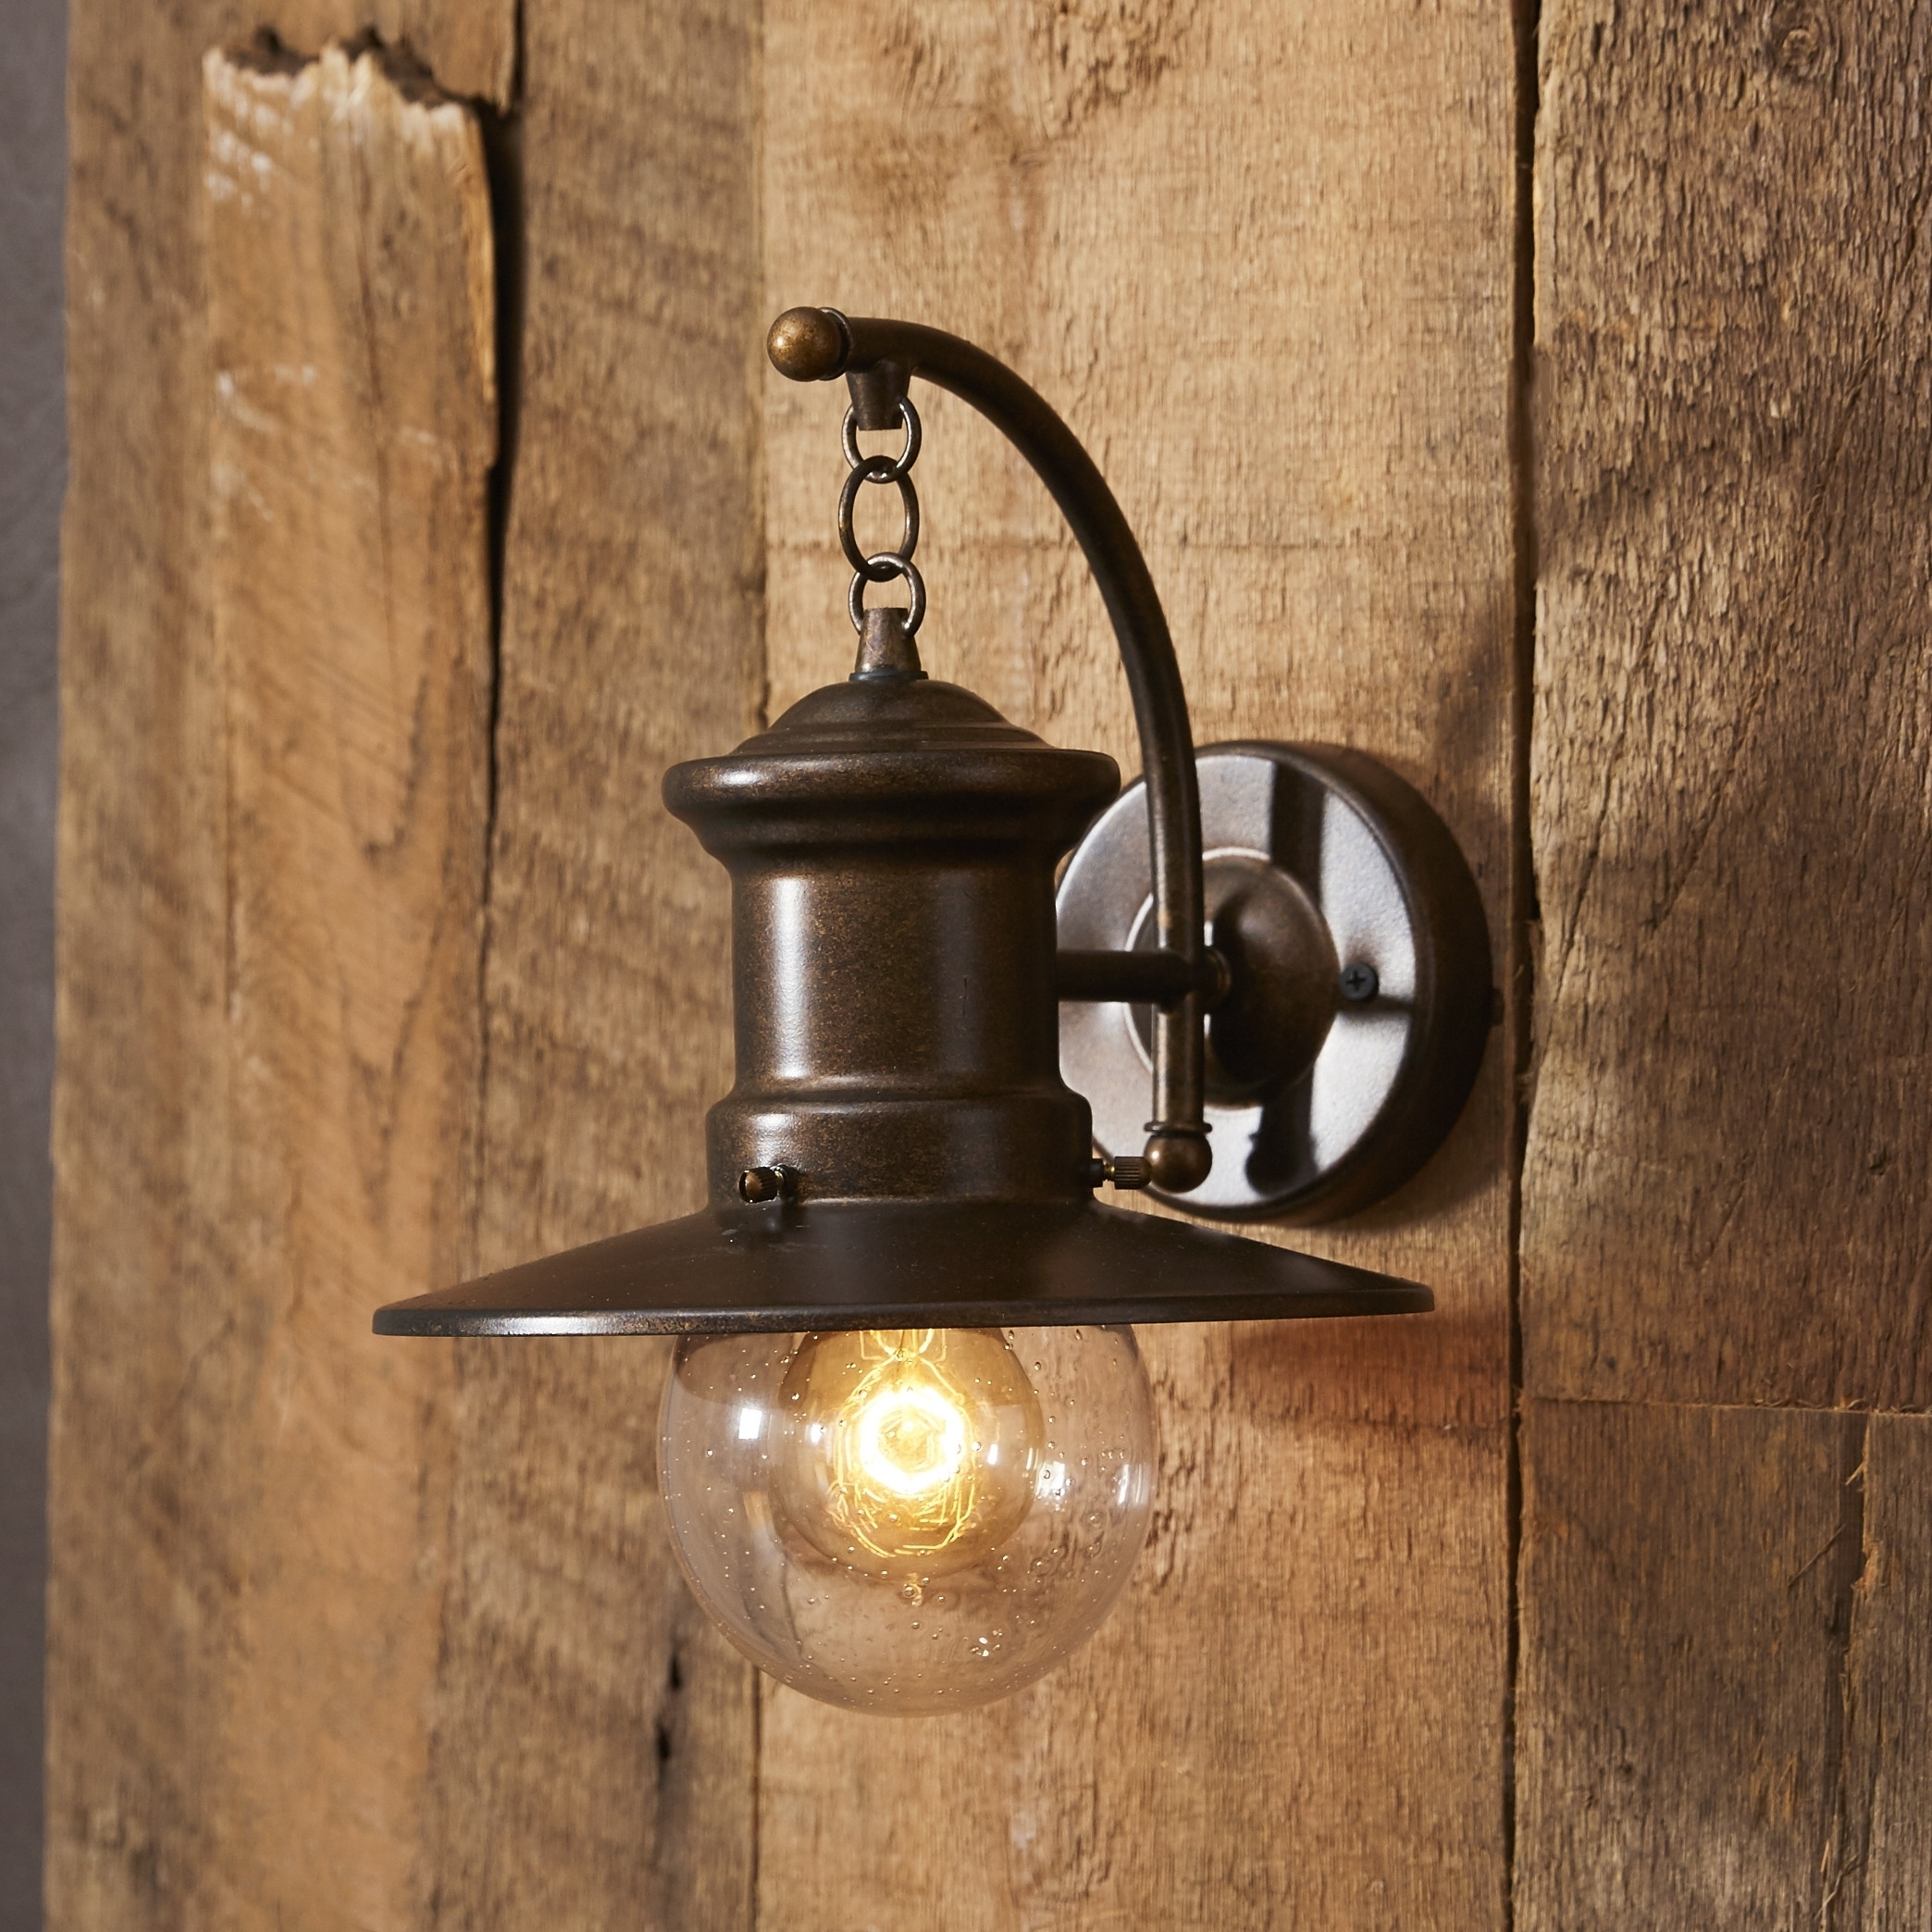 Glamorous Barn Light Sconce 2017 Design Outdoor Barn Lights For For Well Known Outdoor Hanging Barn Lights (View 15 of 20)